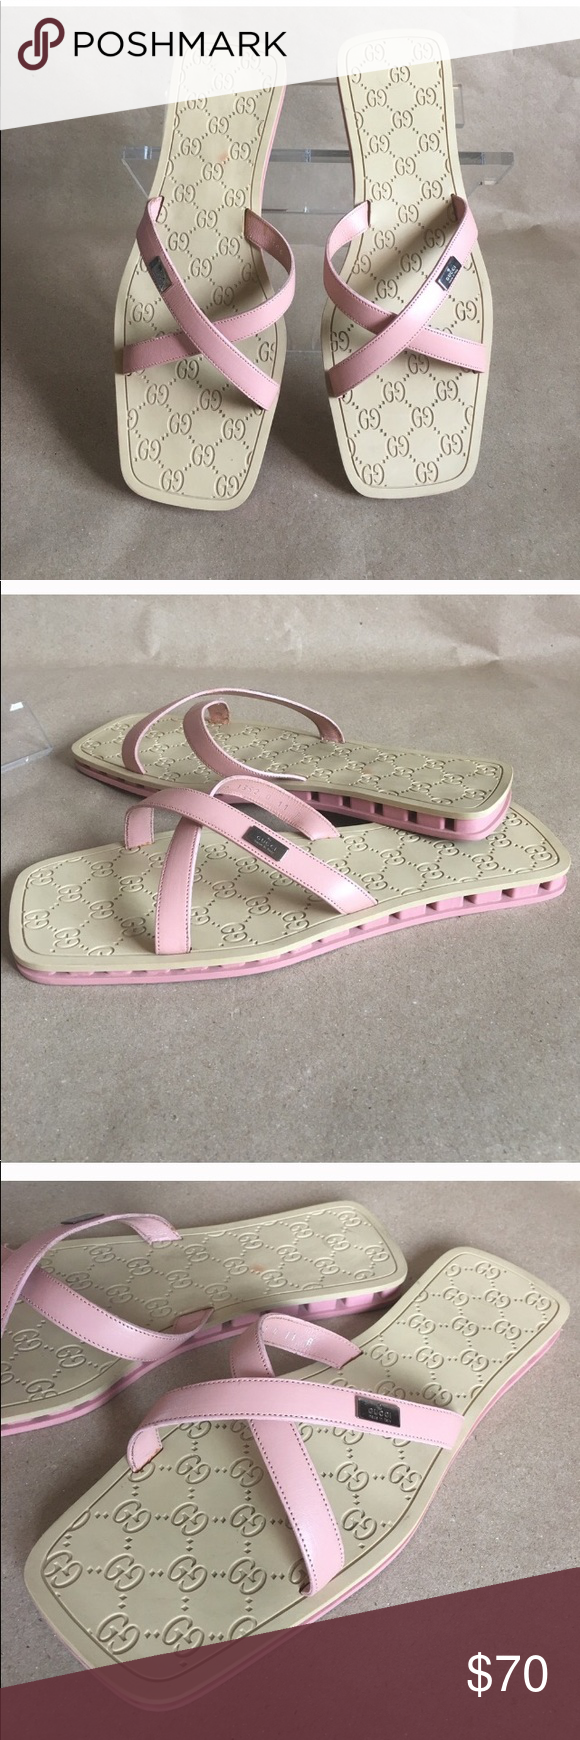 1dbf97a15282 Gucci slides Vintage Gucci pink slides. I bought them on Poshmark but they  are too big. They are a true 11 Gucci Shoes Flats   Loafers